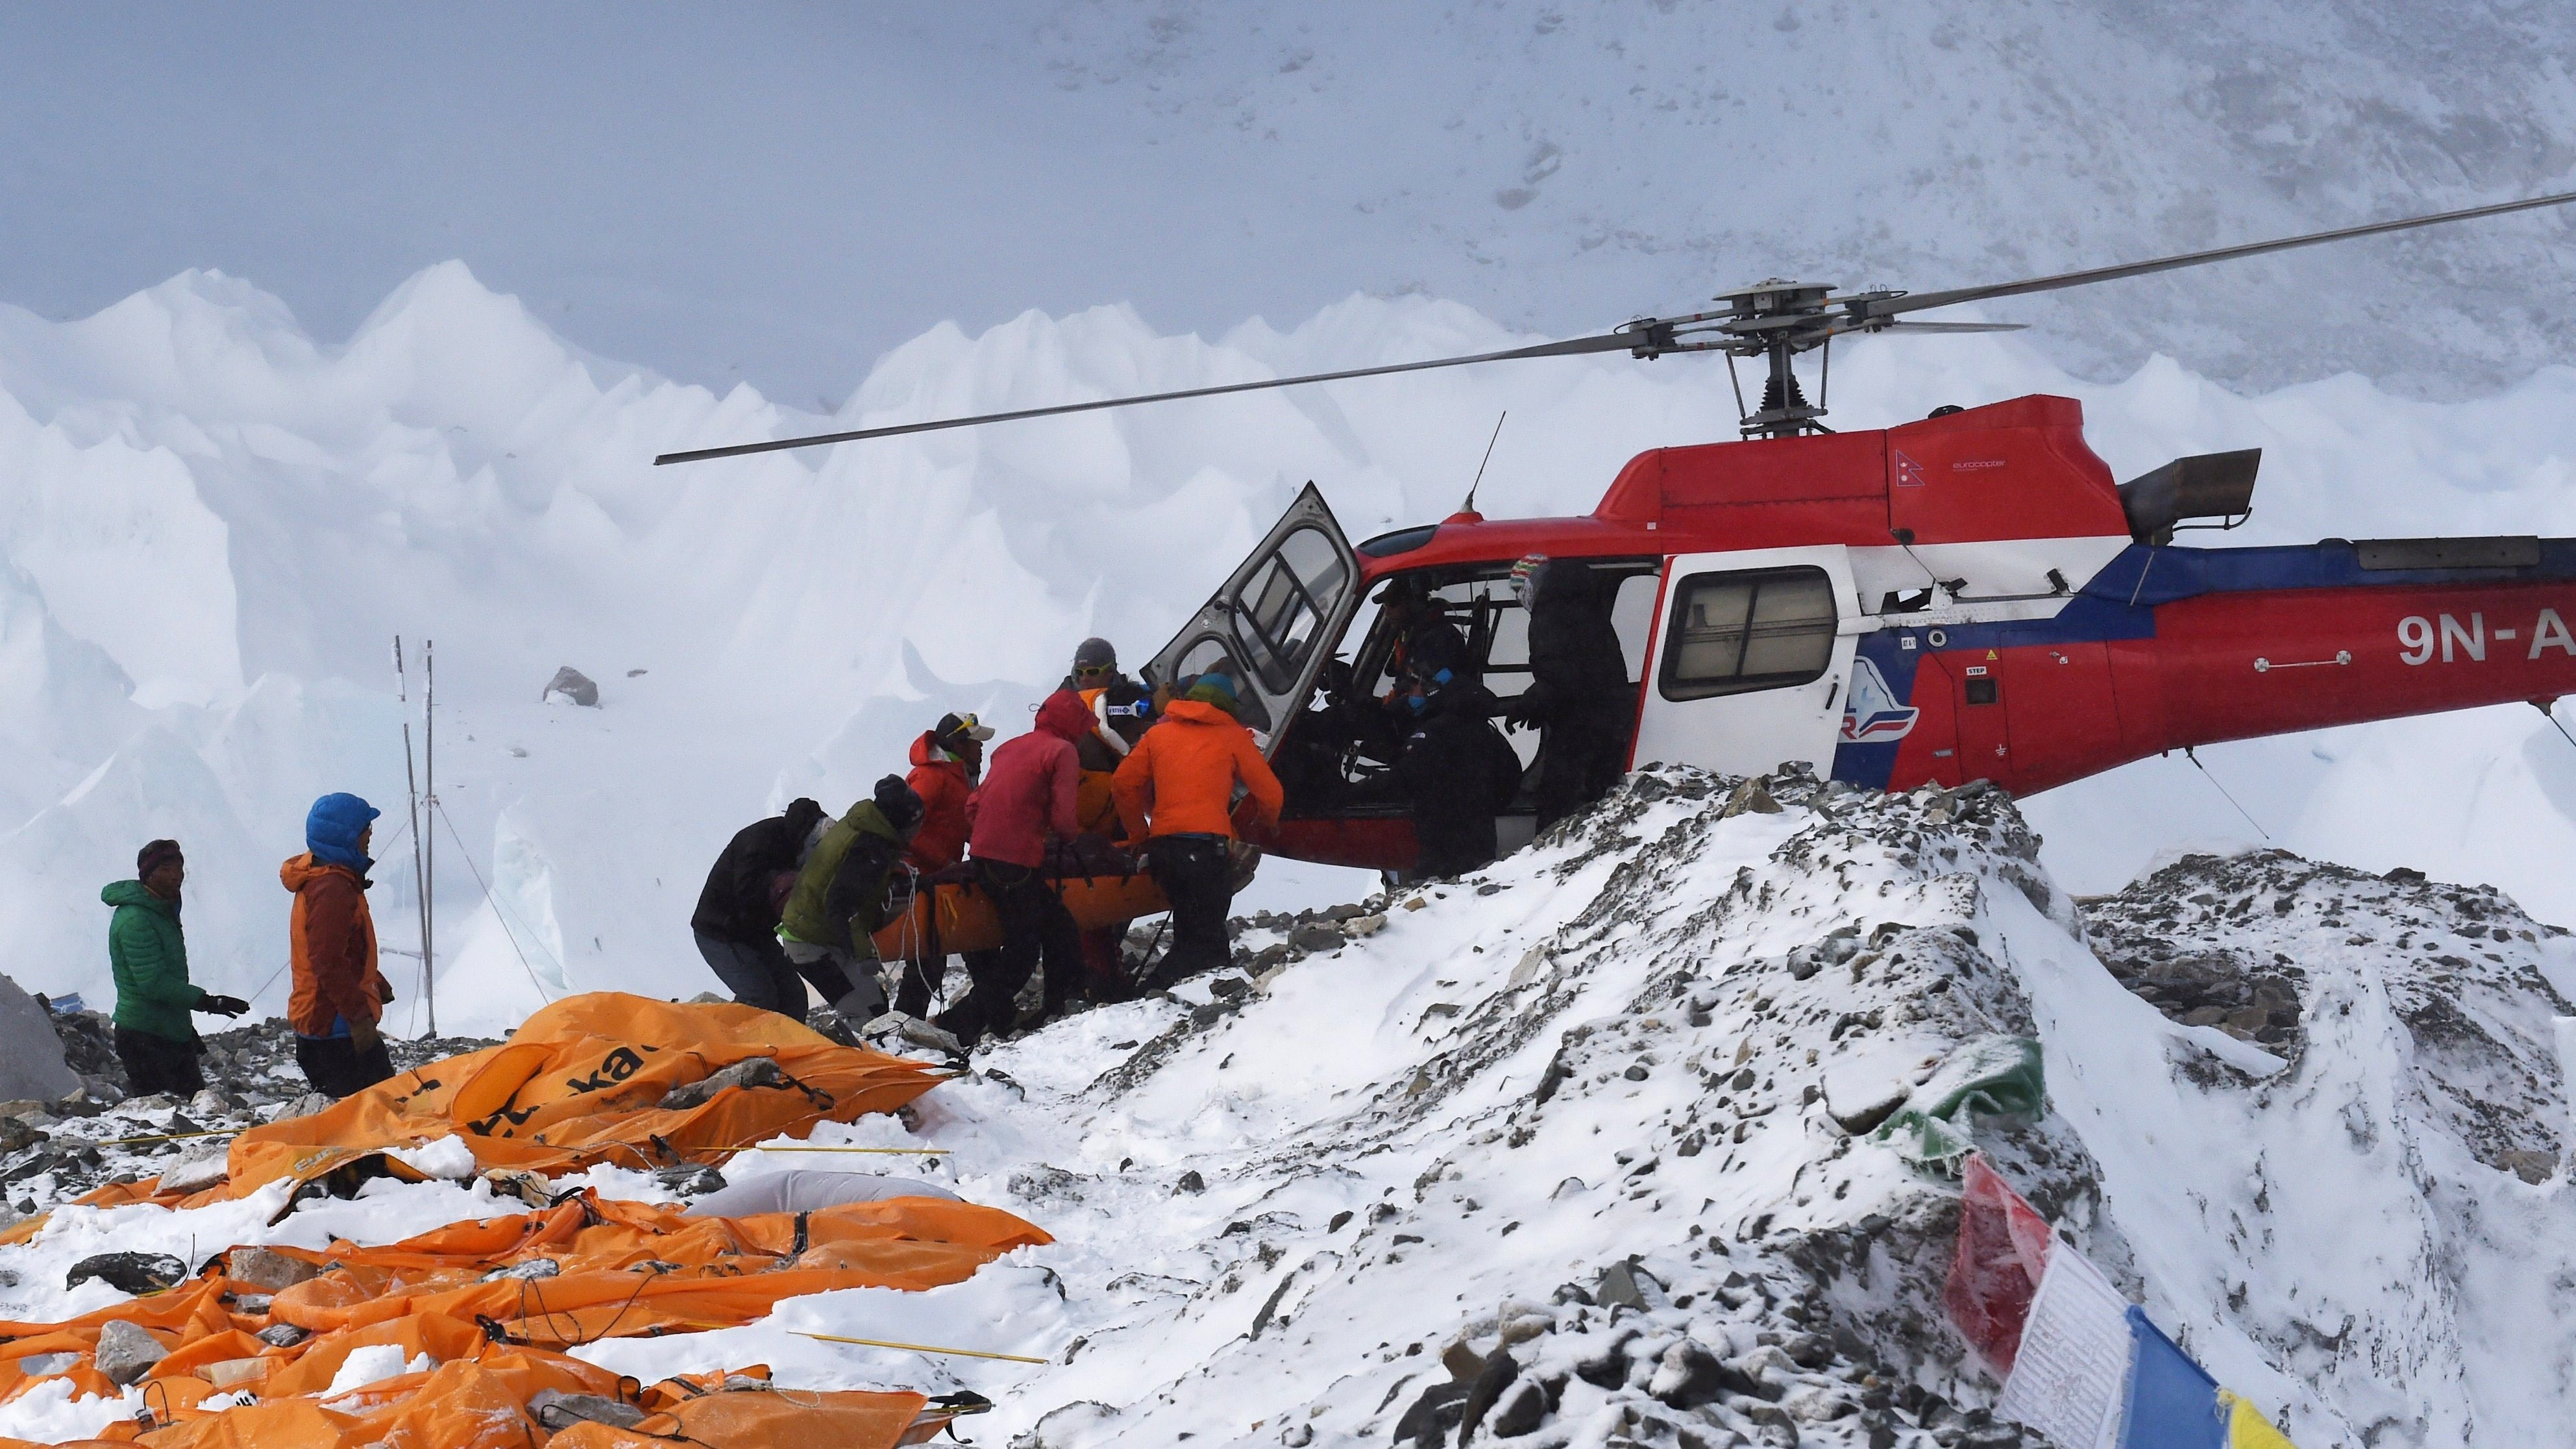 Why Helicopters Haven U2019t Evacuated Everyone From Mount